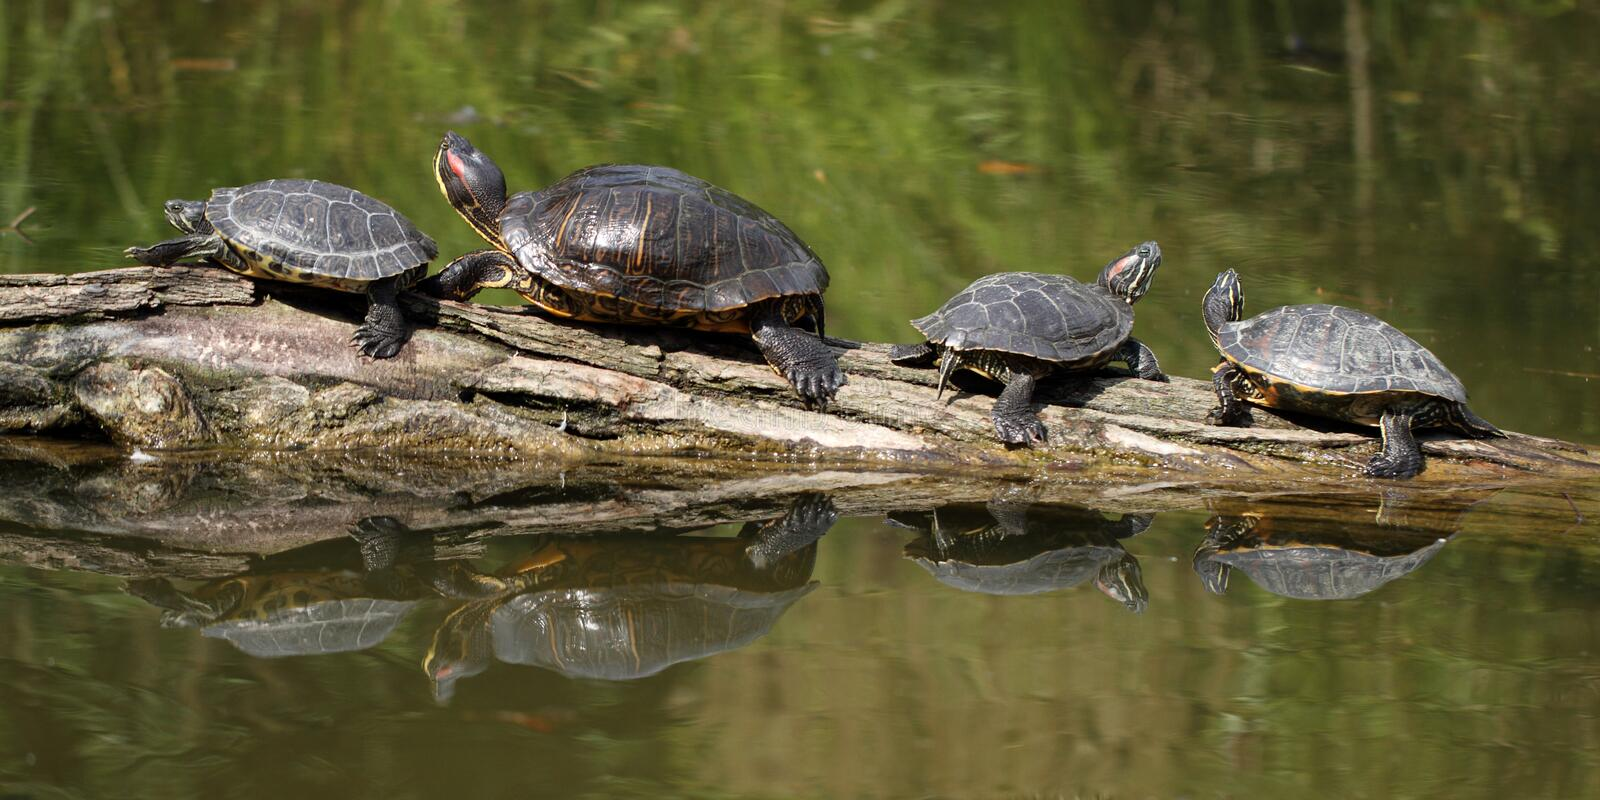 Red Eared Slider. Details of a Red Eared Slider Turtle stock photography